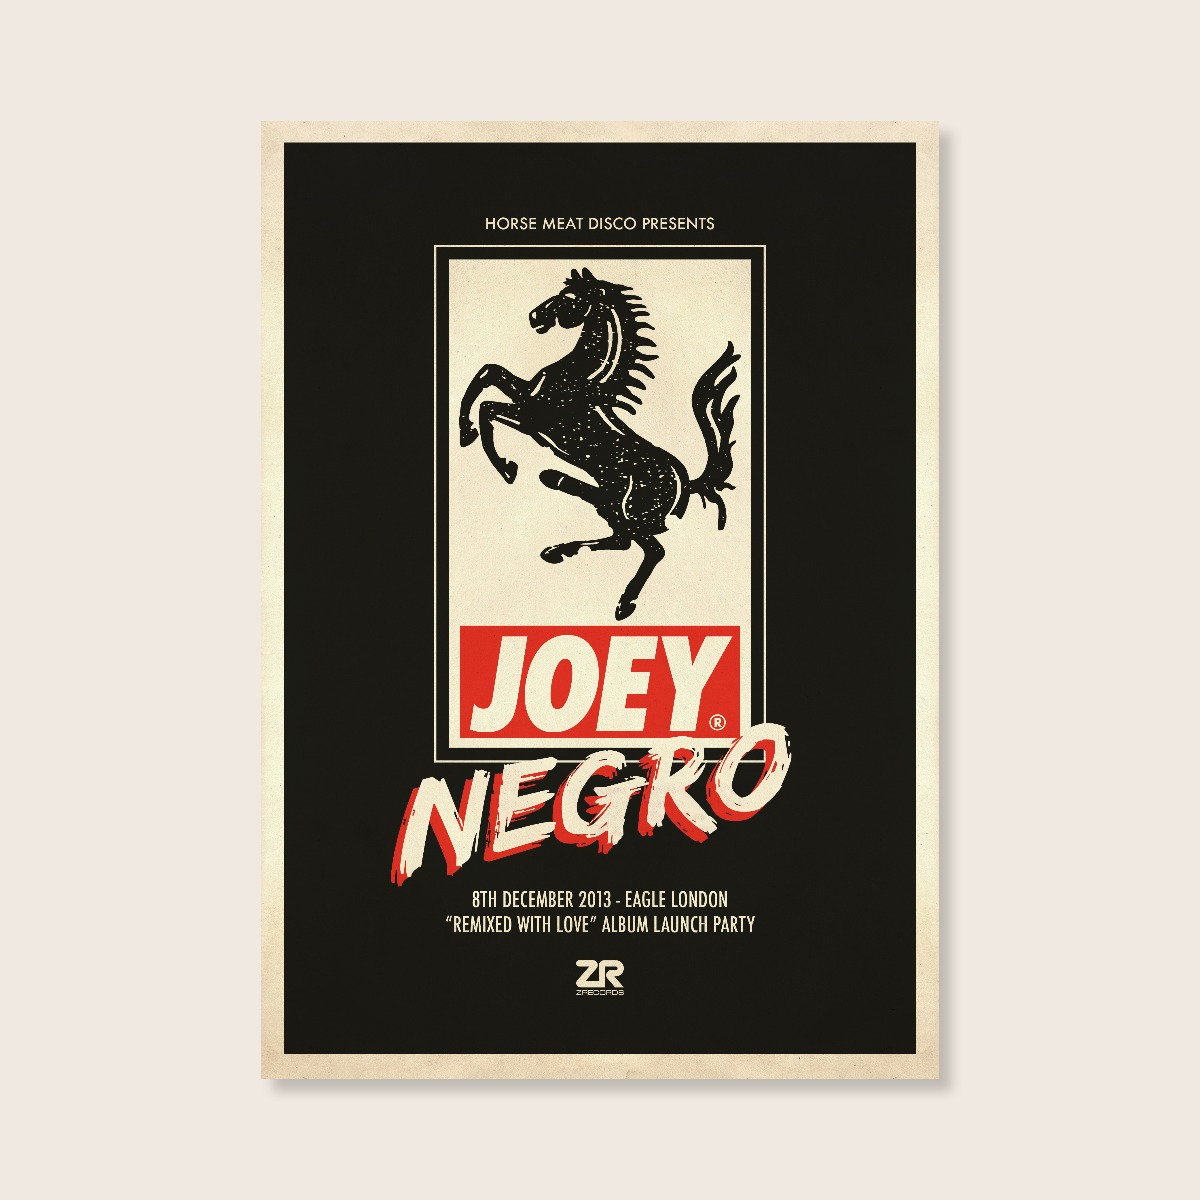 4675a8a3 Horse Meat Disco Poster – Joey Negro | Classic Music Company